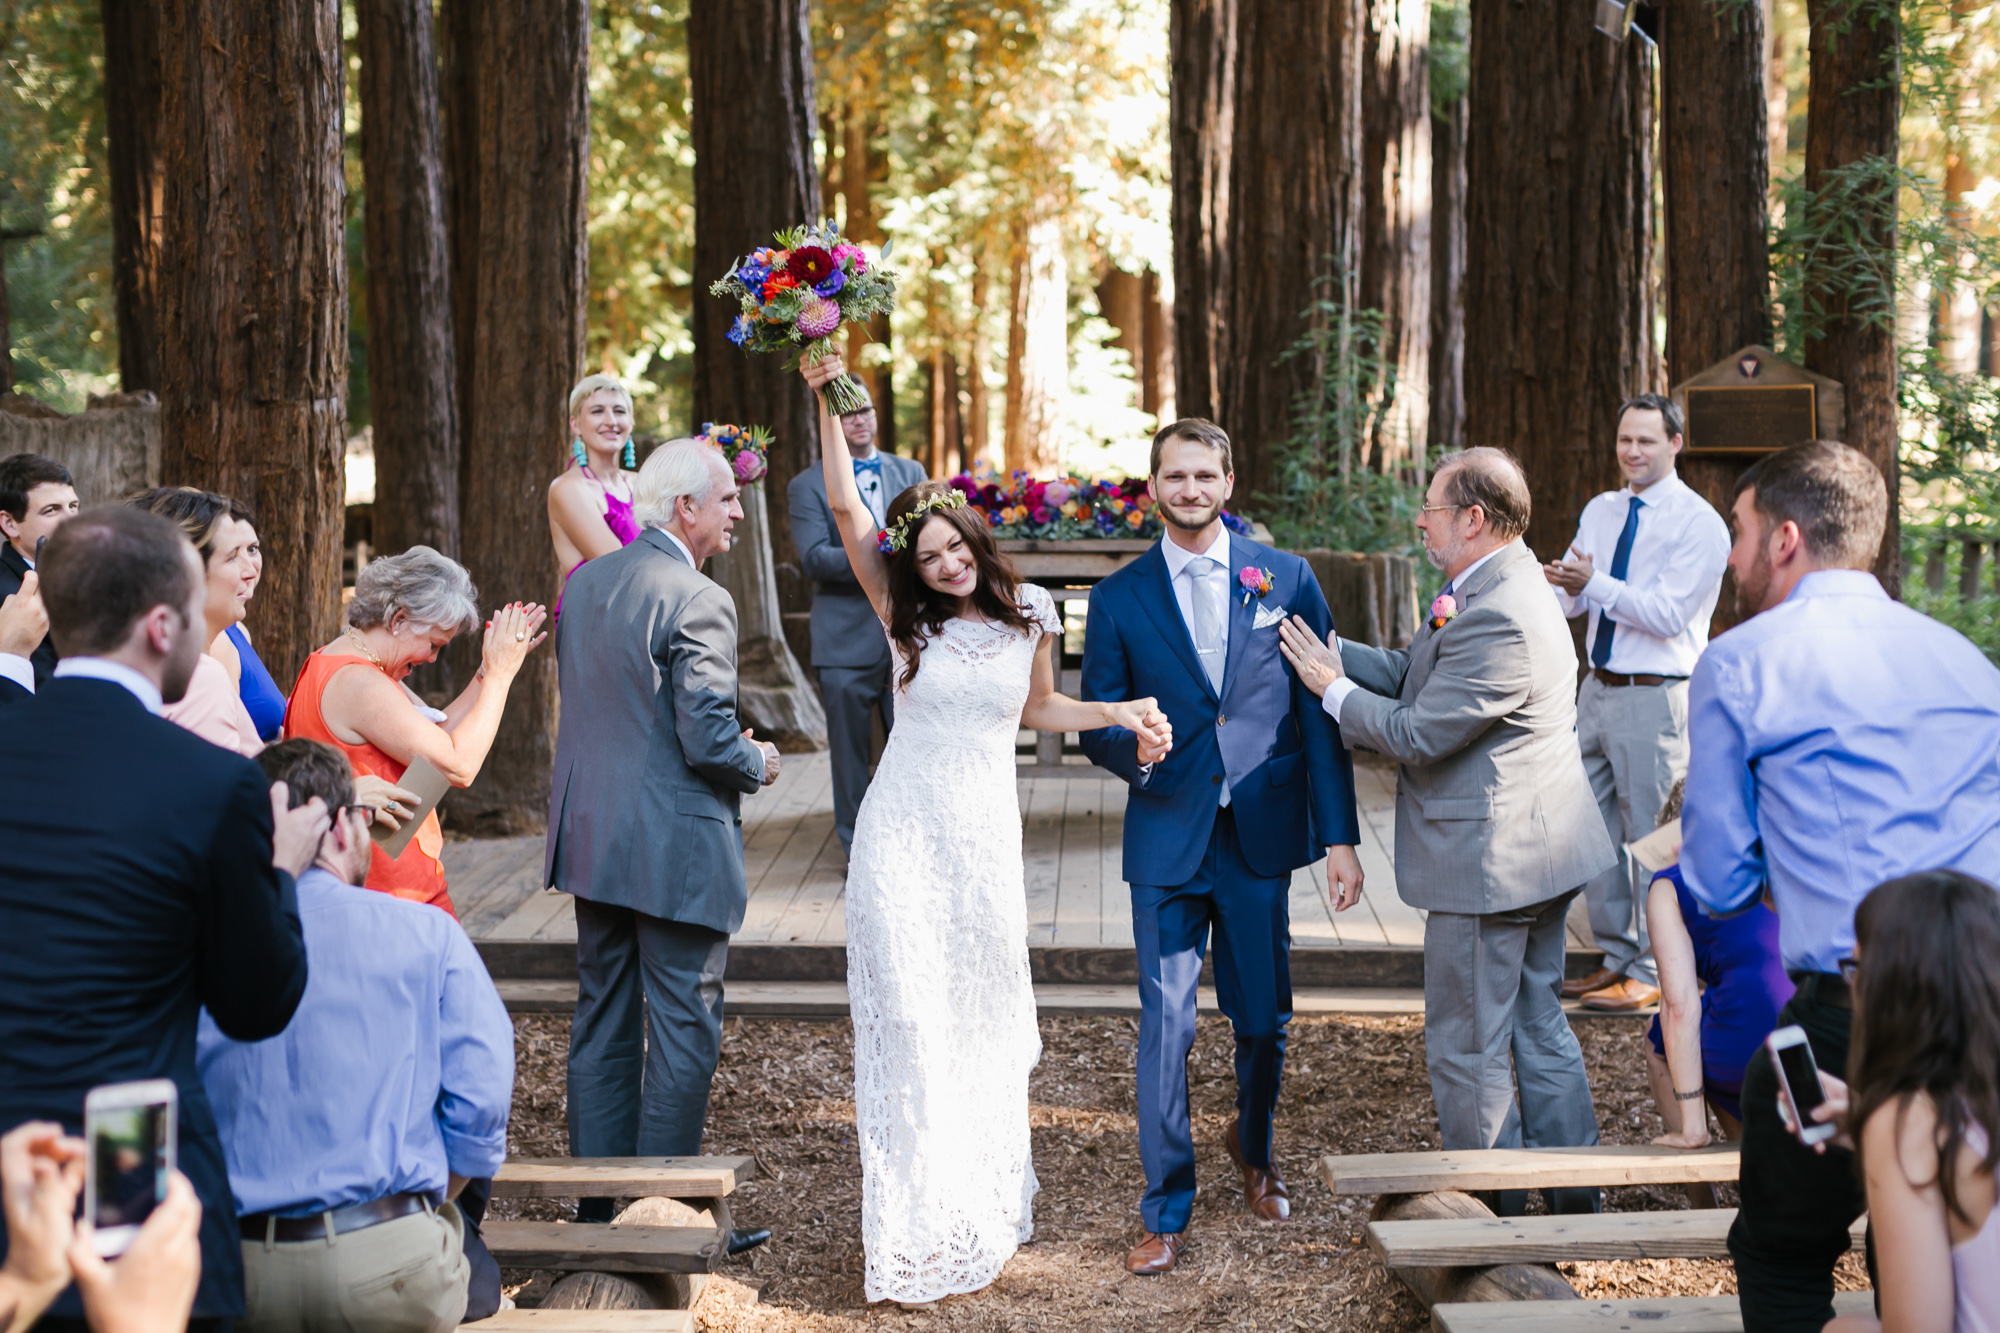 Bride holds her colorful bouquet up over her head in celebration as she walks out of ceremony with her husband